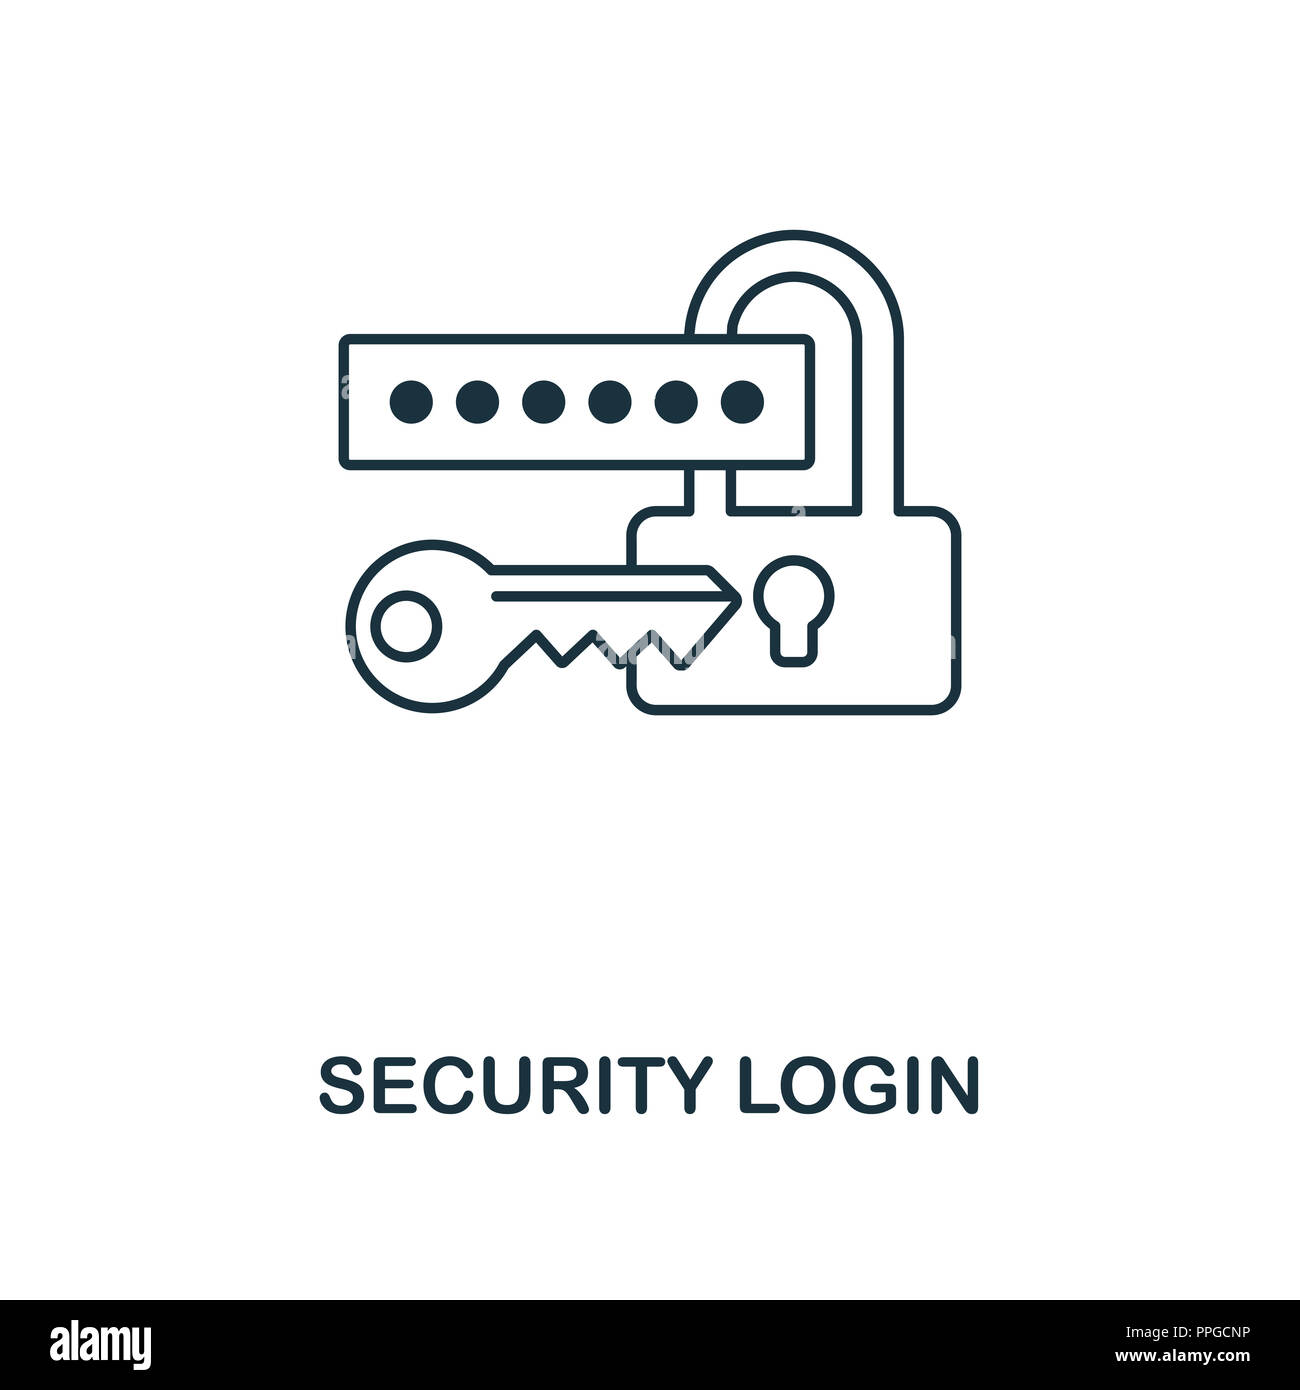 Security Login outline icon  Premium design from web